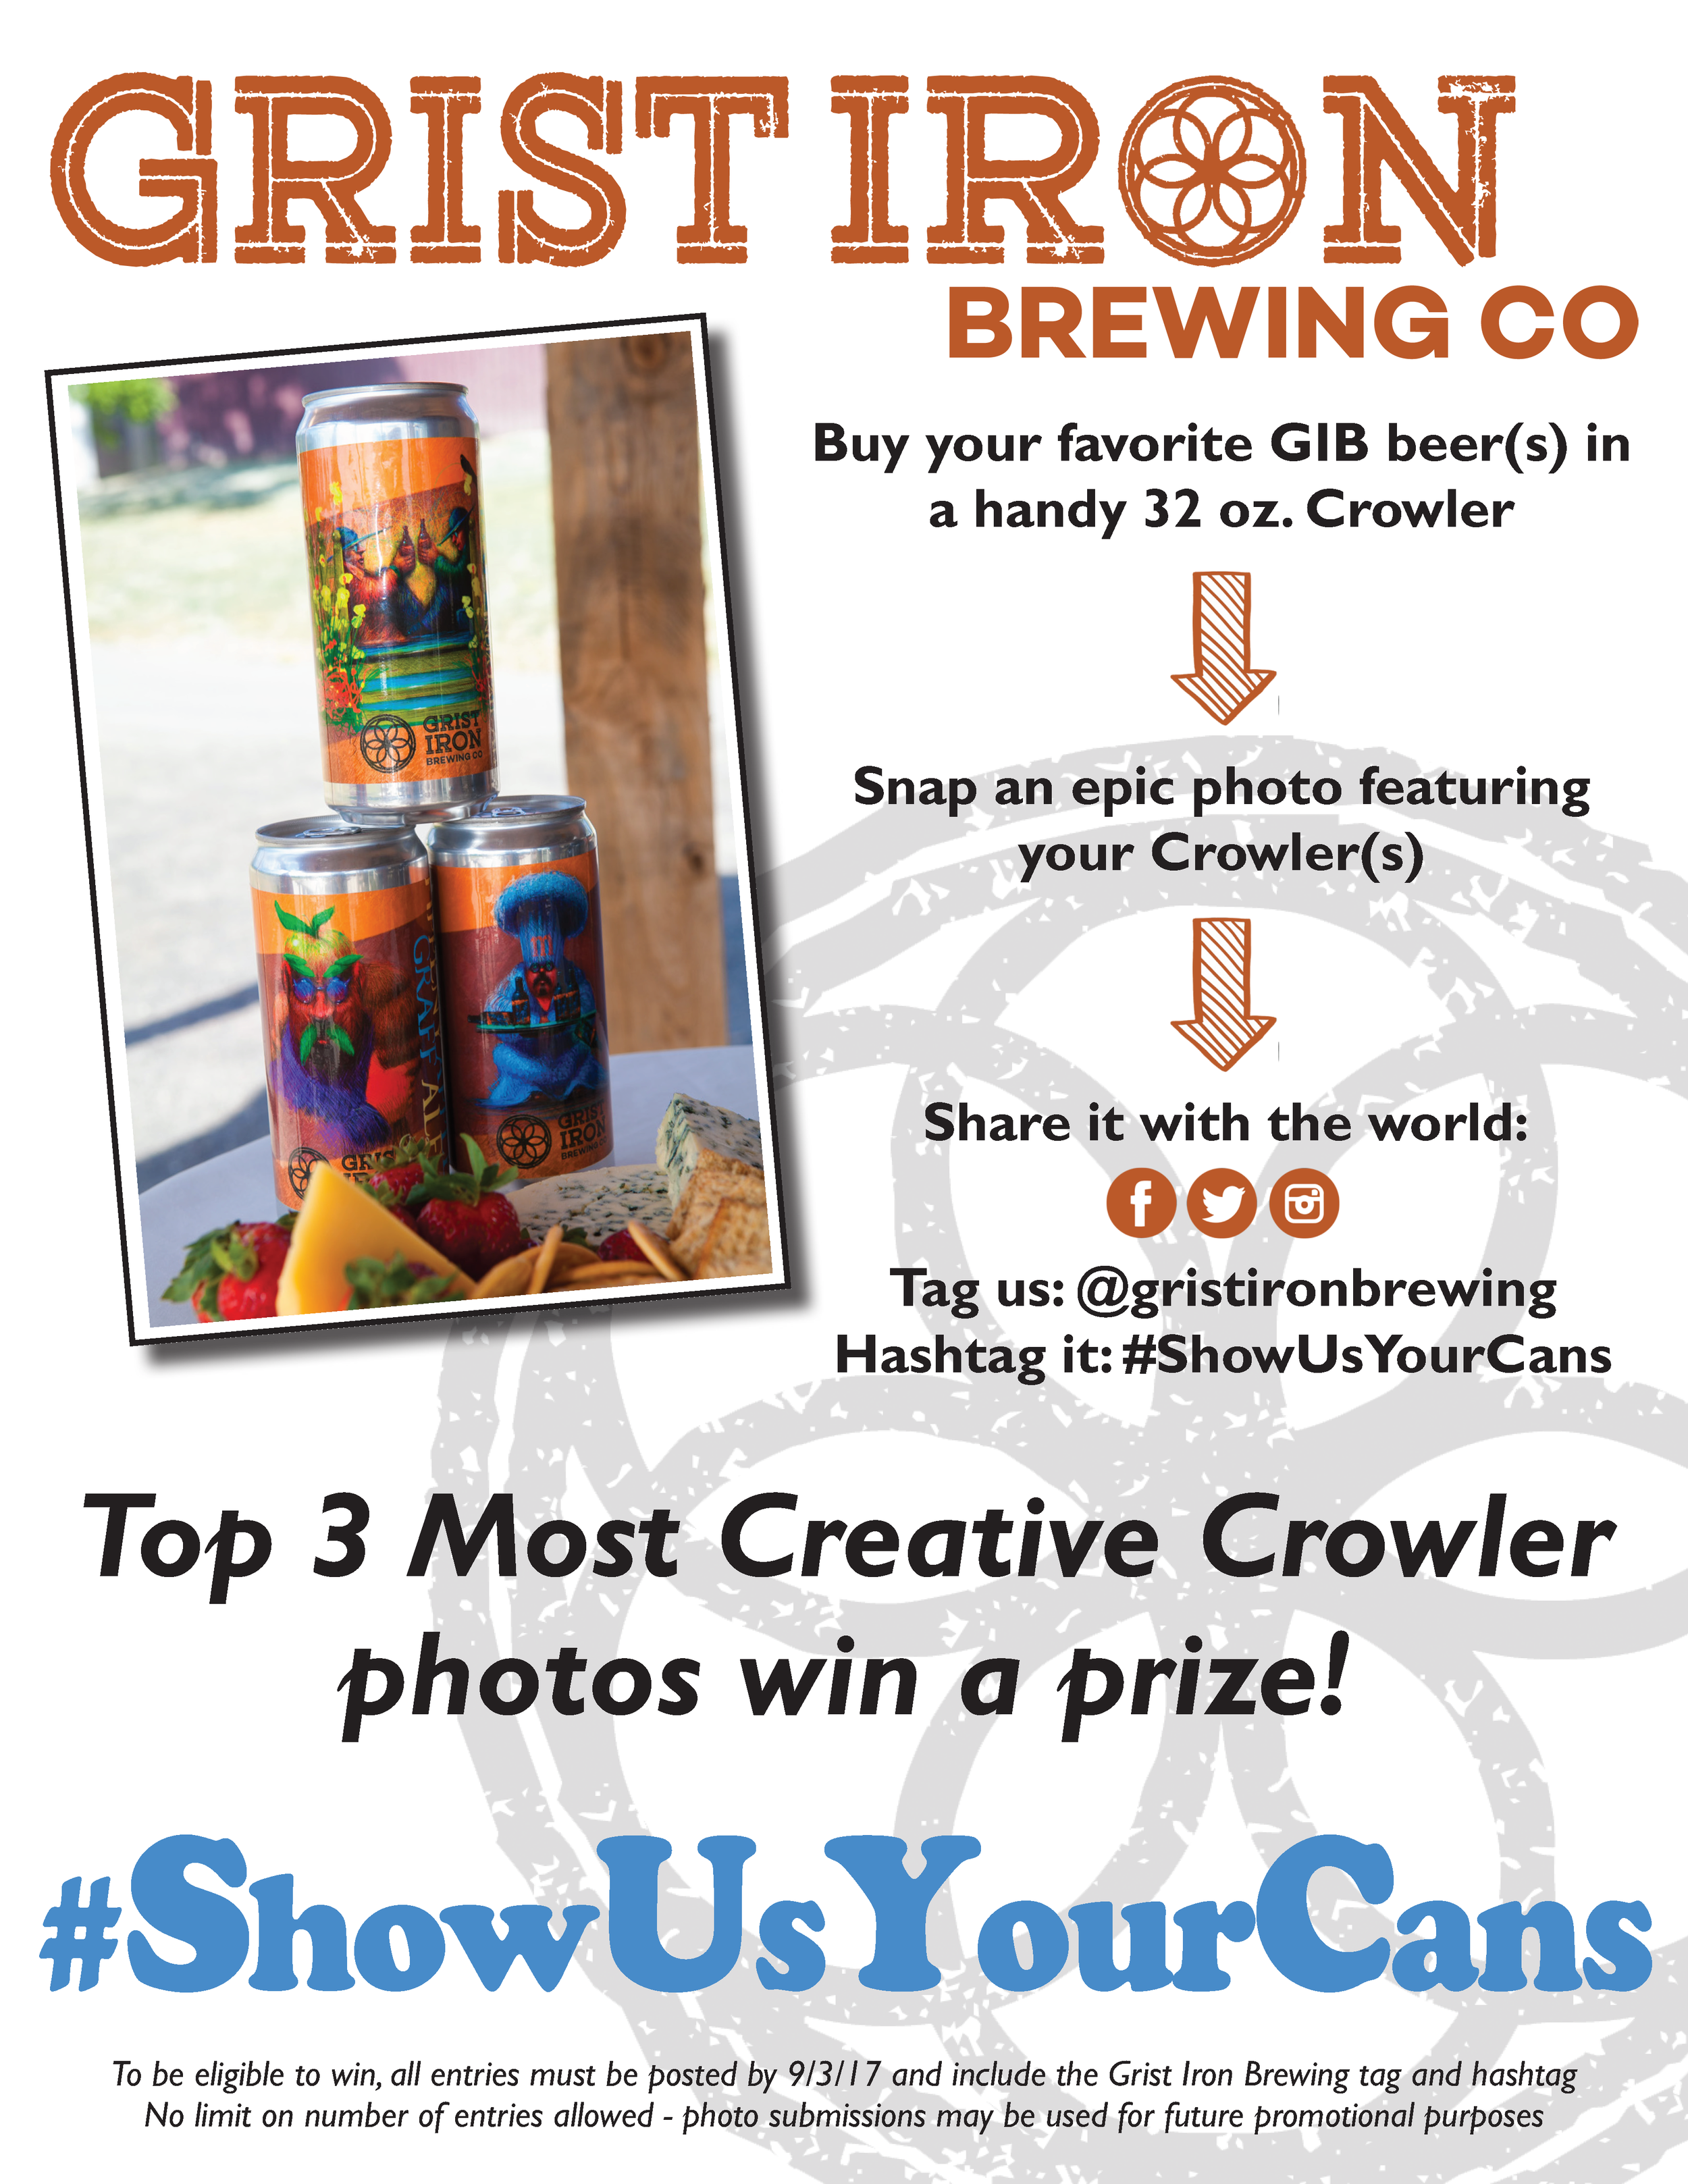 Summer Crowler Photo Contest